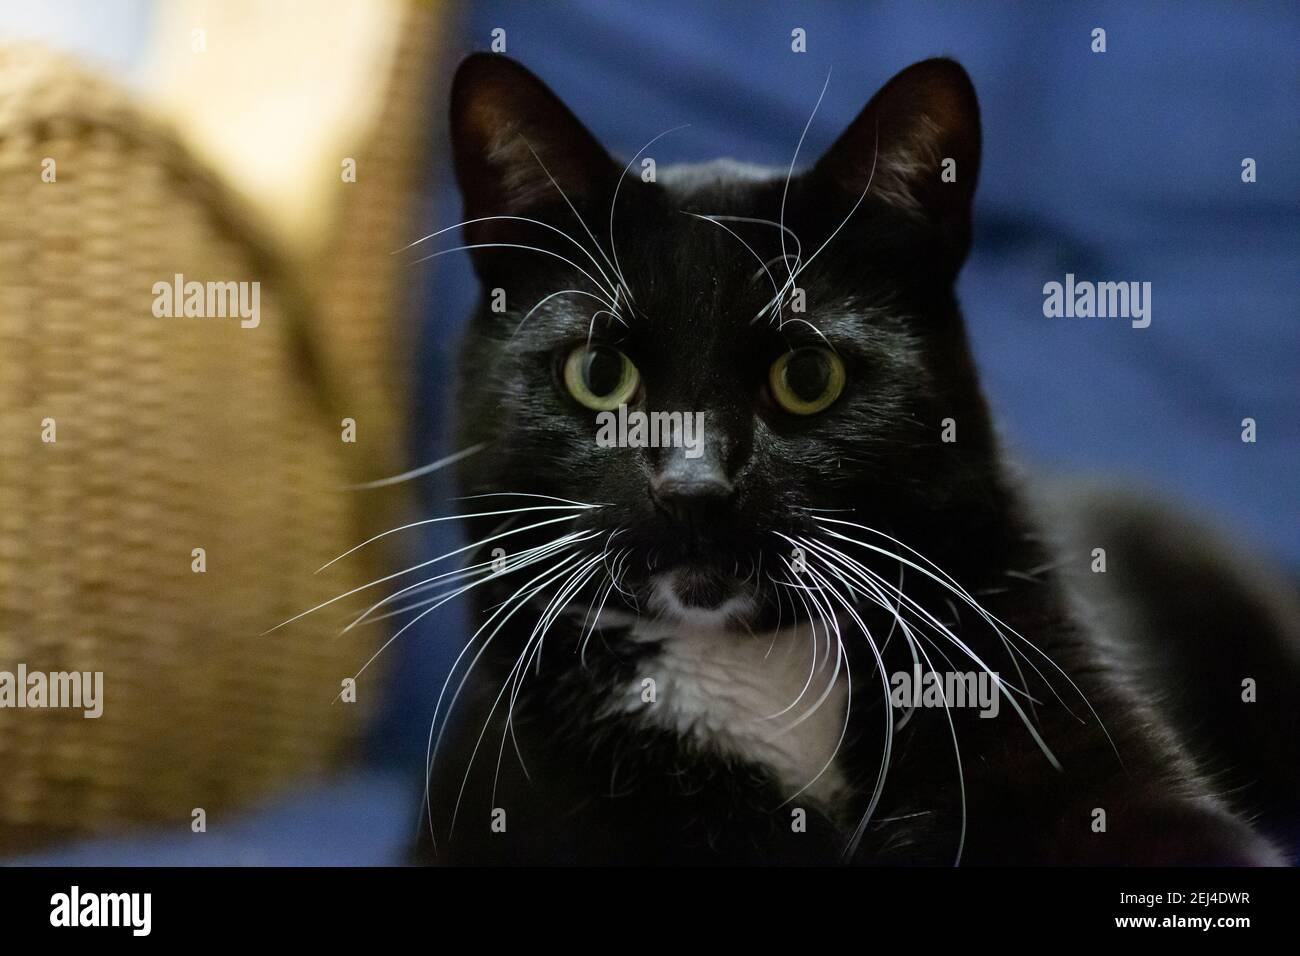 Black cat with yellow eyes on blue background Stock Photo